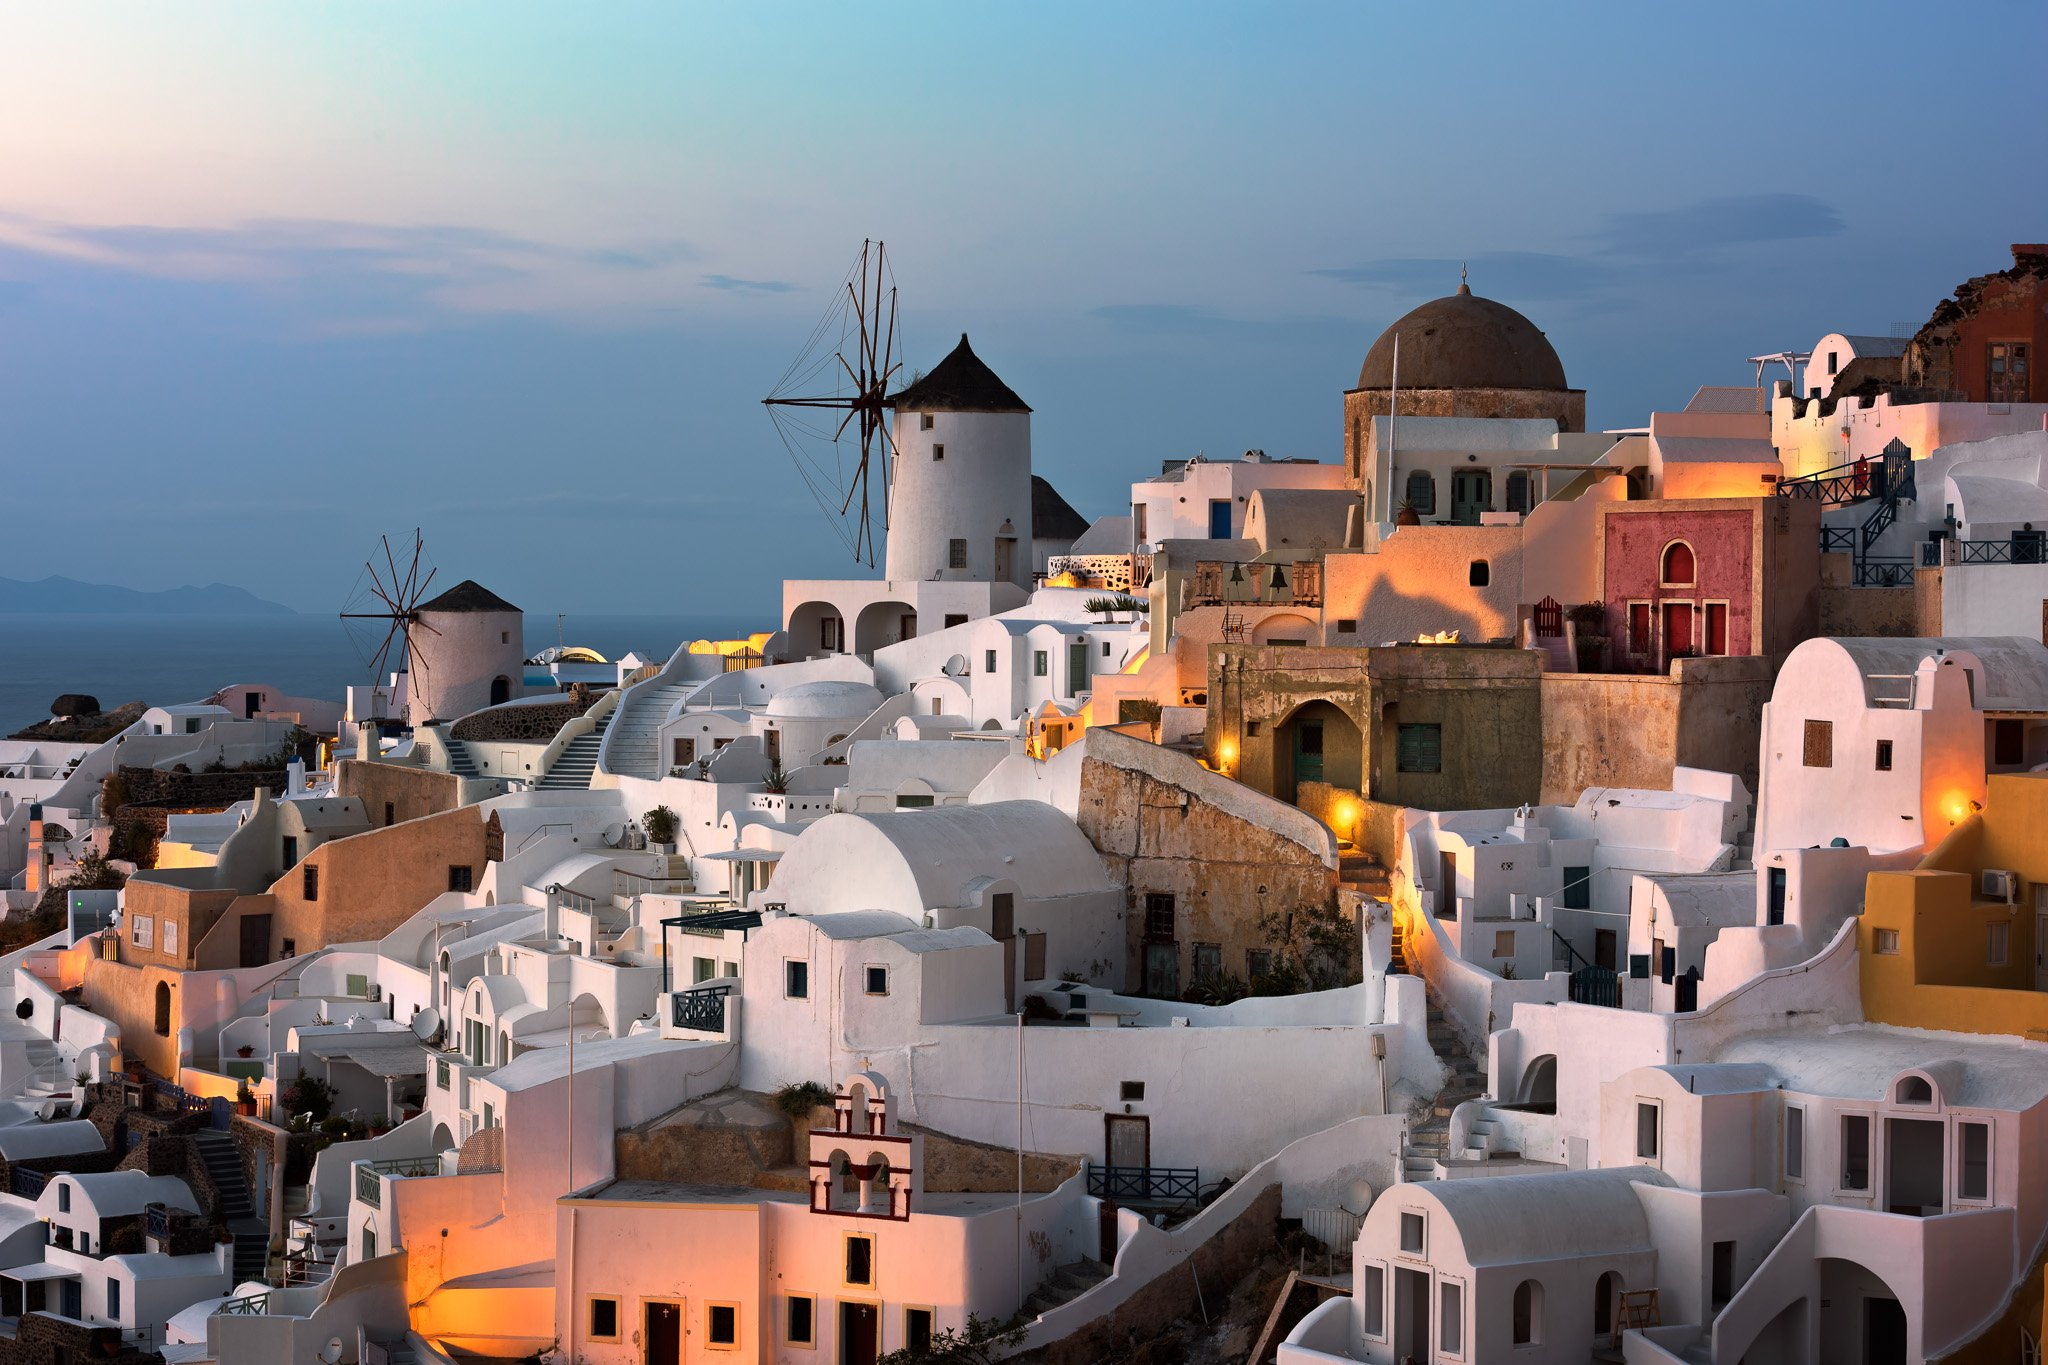 aegean, architecture, beautiful, blue, building, caldera, church, city, cityscape, cyclades, dome, dusk, europe, evening, famous, greece, greek, hellas, holiday, hotel, house, iconic, illuminated, island, landmark, landscape, lights, mediterranean, mill, , anshar